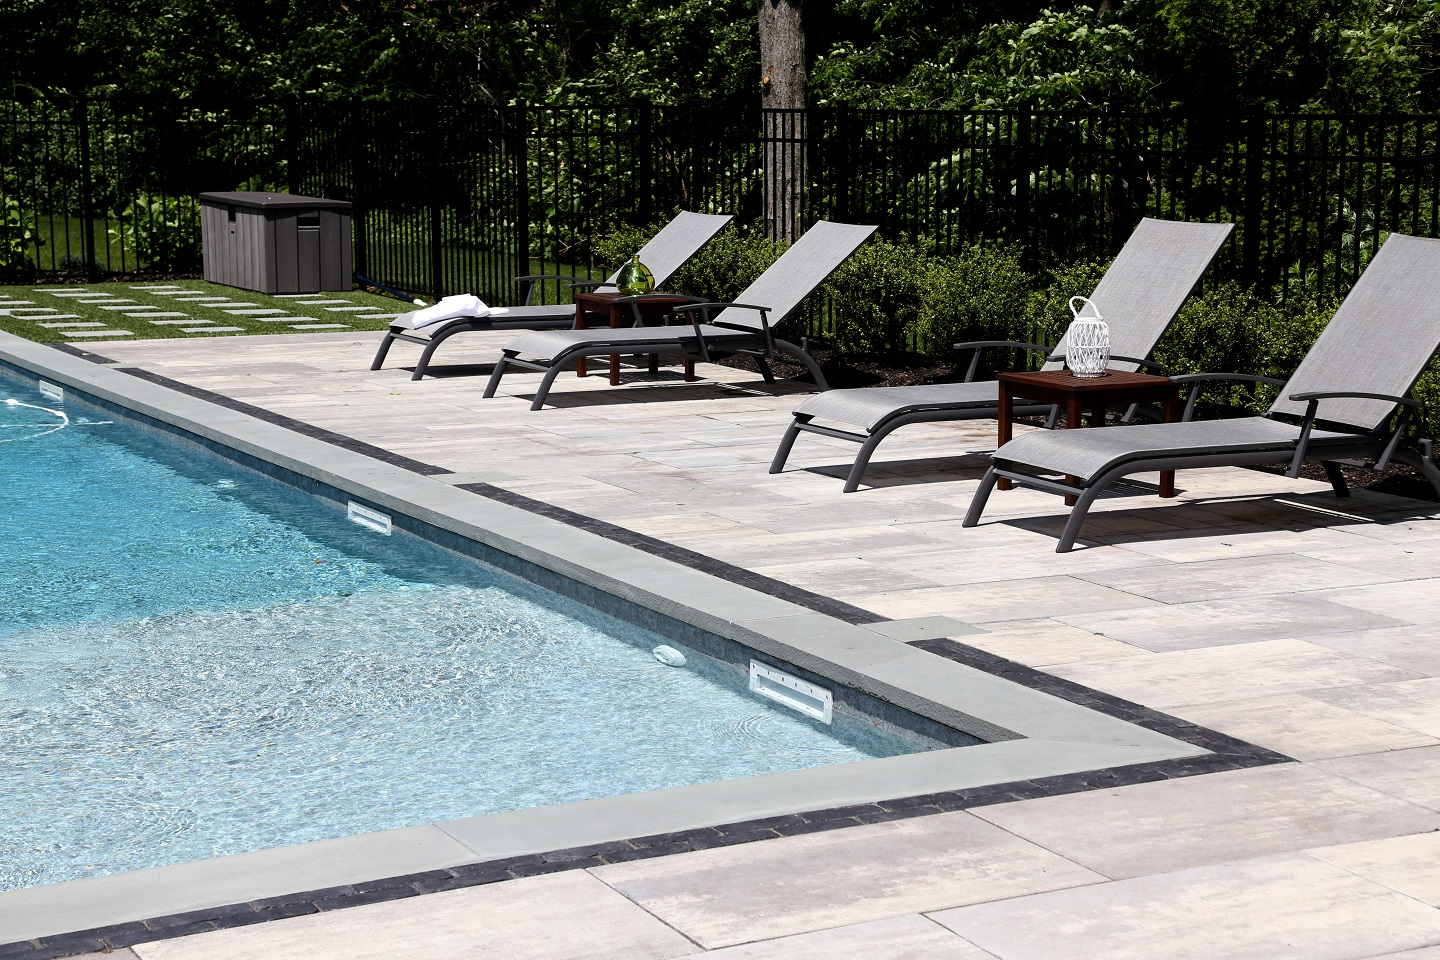 Landscape design with swimming pool in Commack, New York